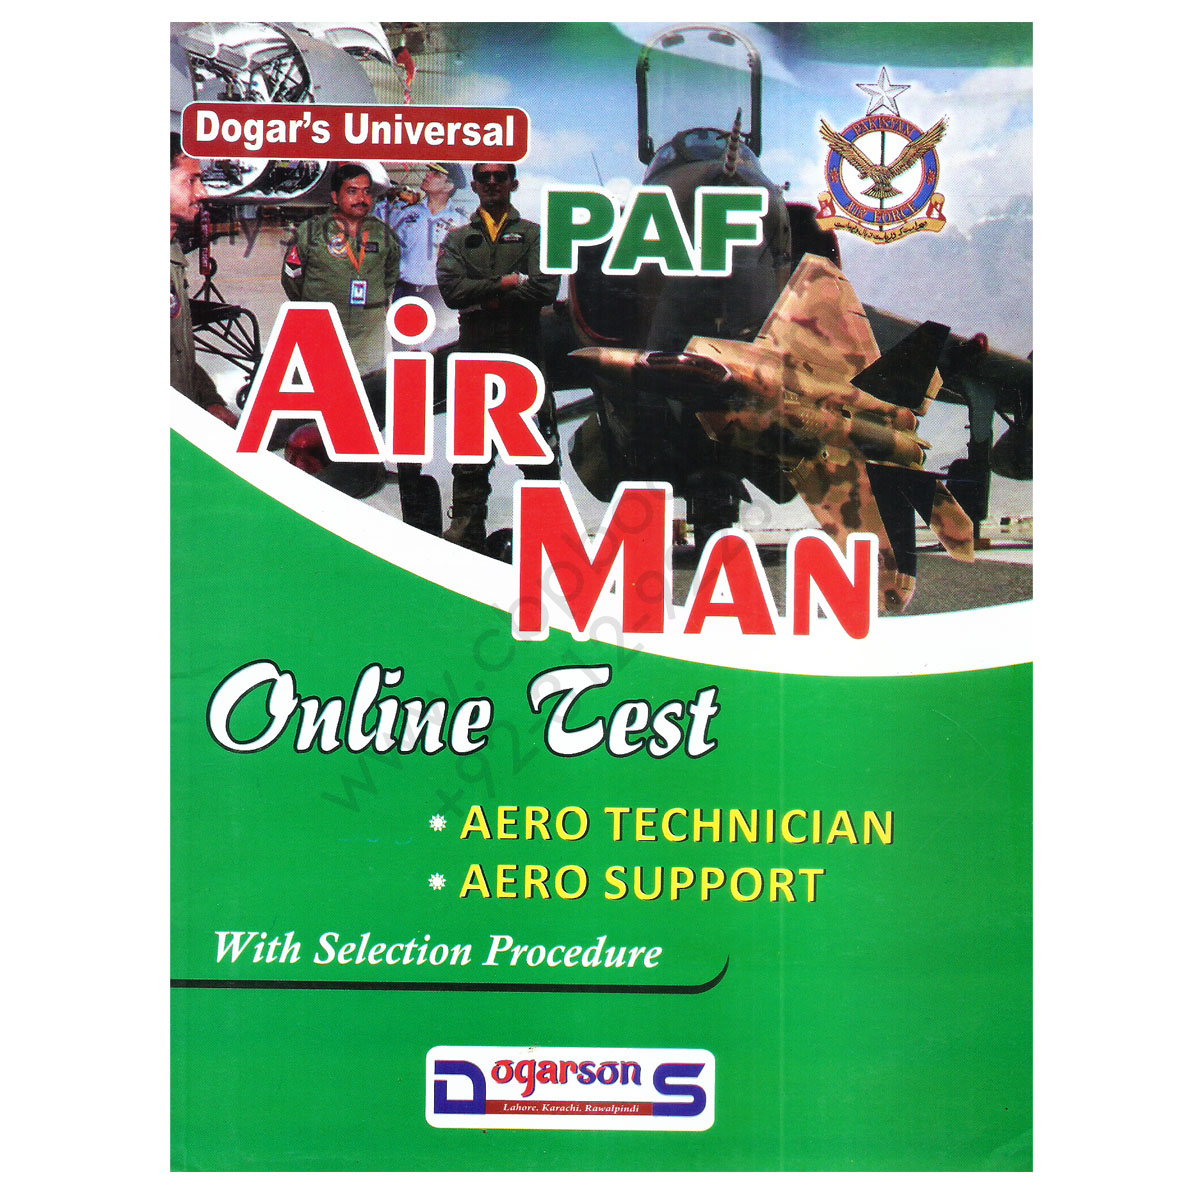 paf air man online test with selection procedure by dogaron